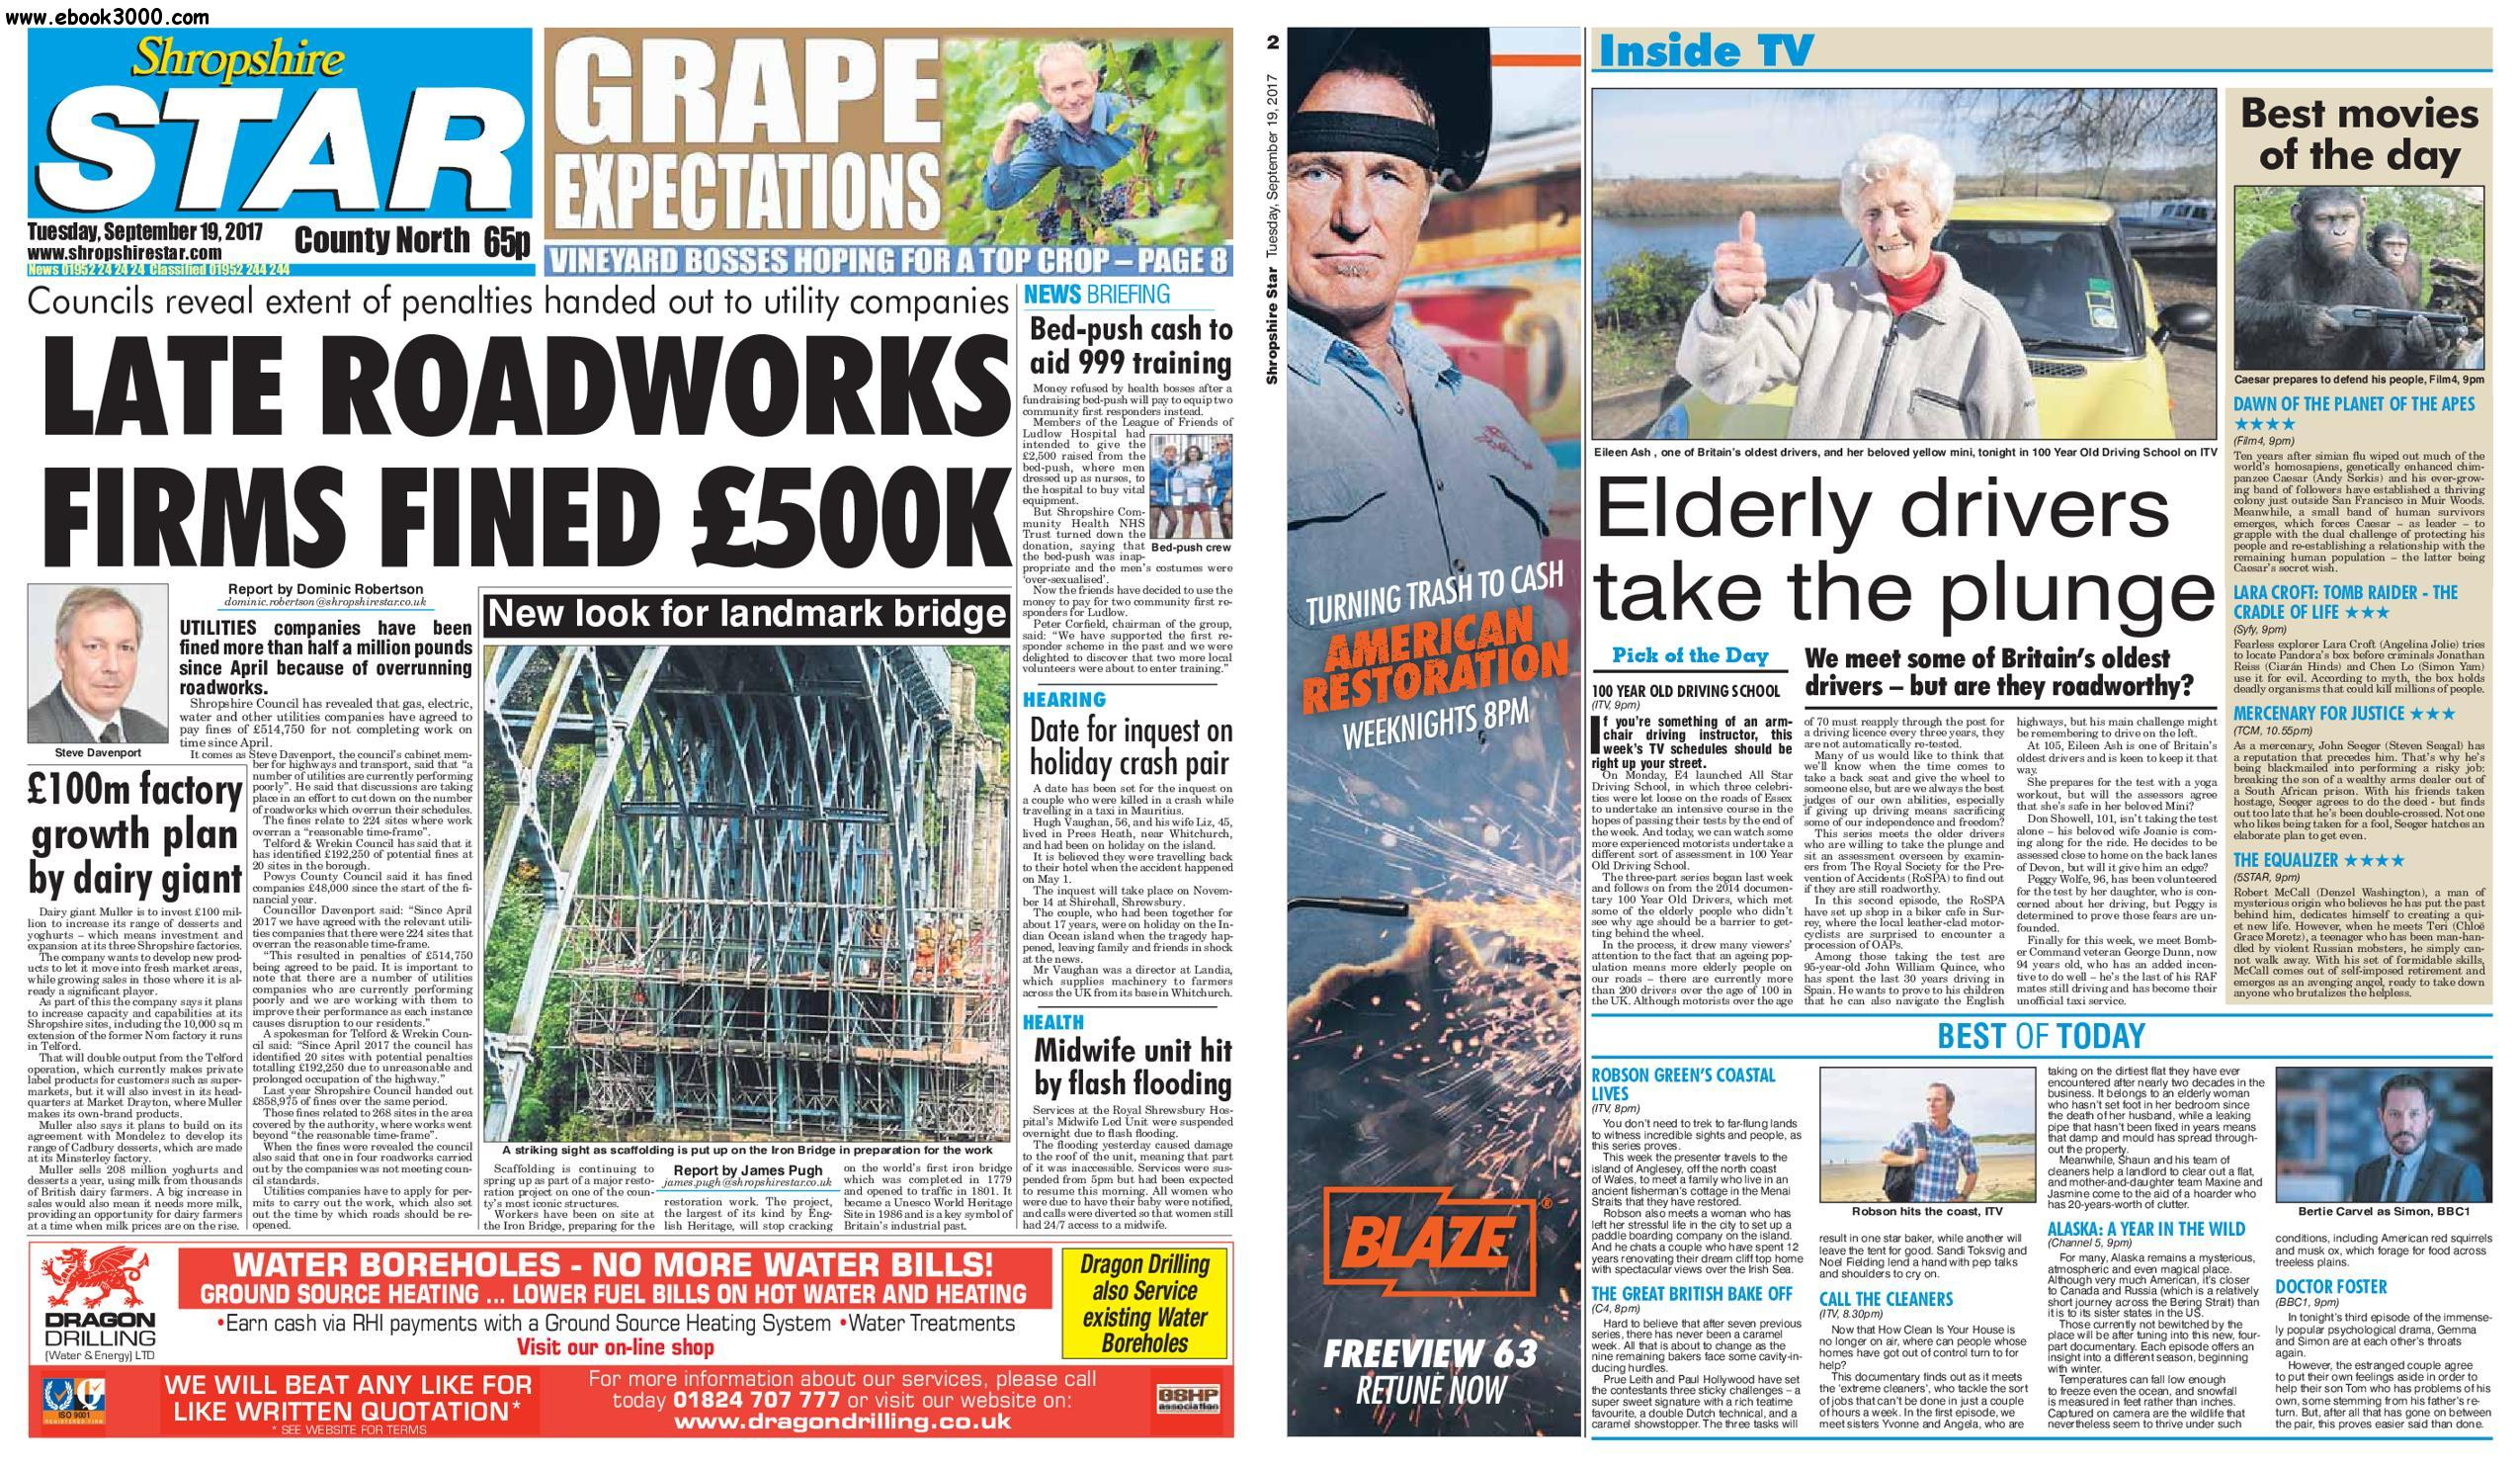 Shropshire Star North County Edition - September 19, 2017